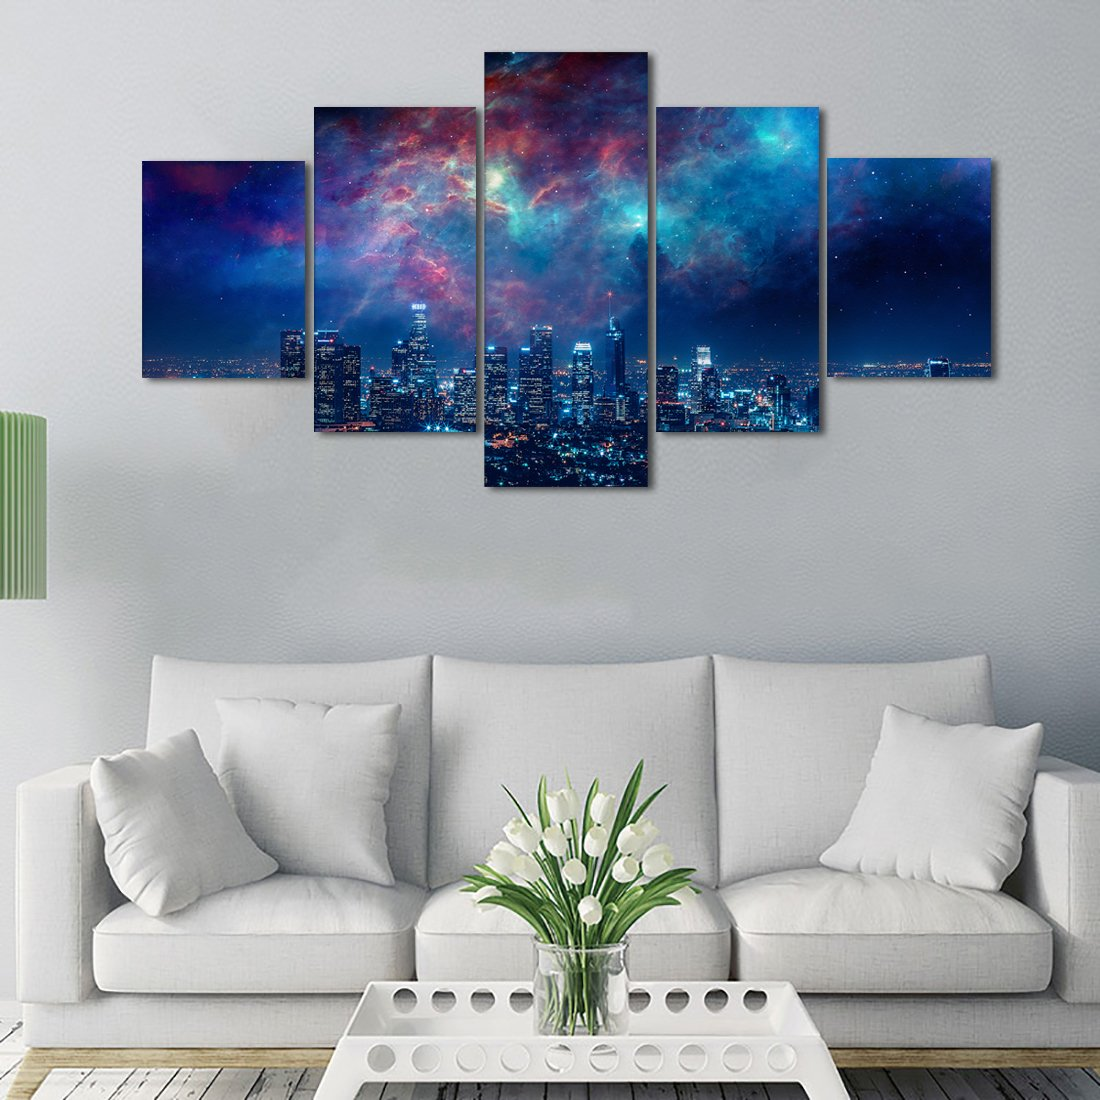 Beautiful Wall Art Painting on Canvas City Night Starry Sky Pictures Home  Decor Bedroom Wall Decorative Modern Artwork 5 Panel HD Paintings Set Frame  ...